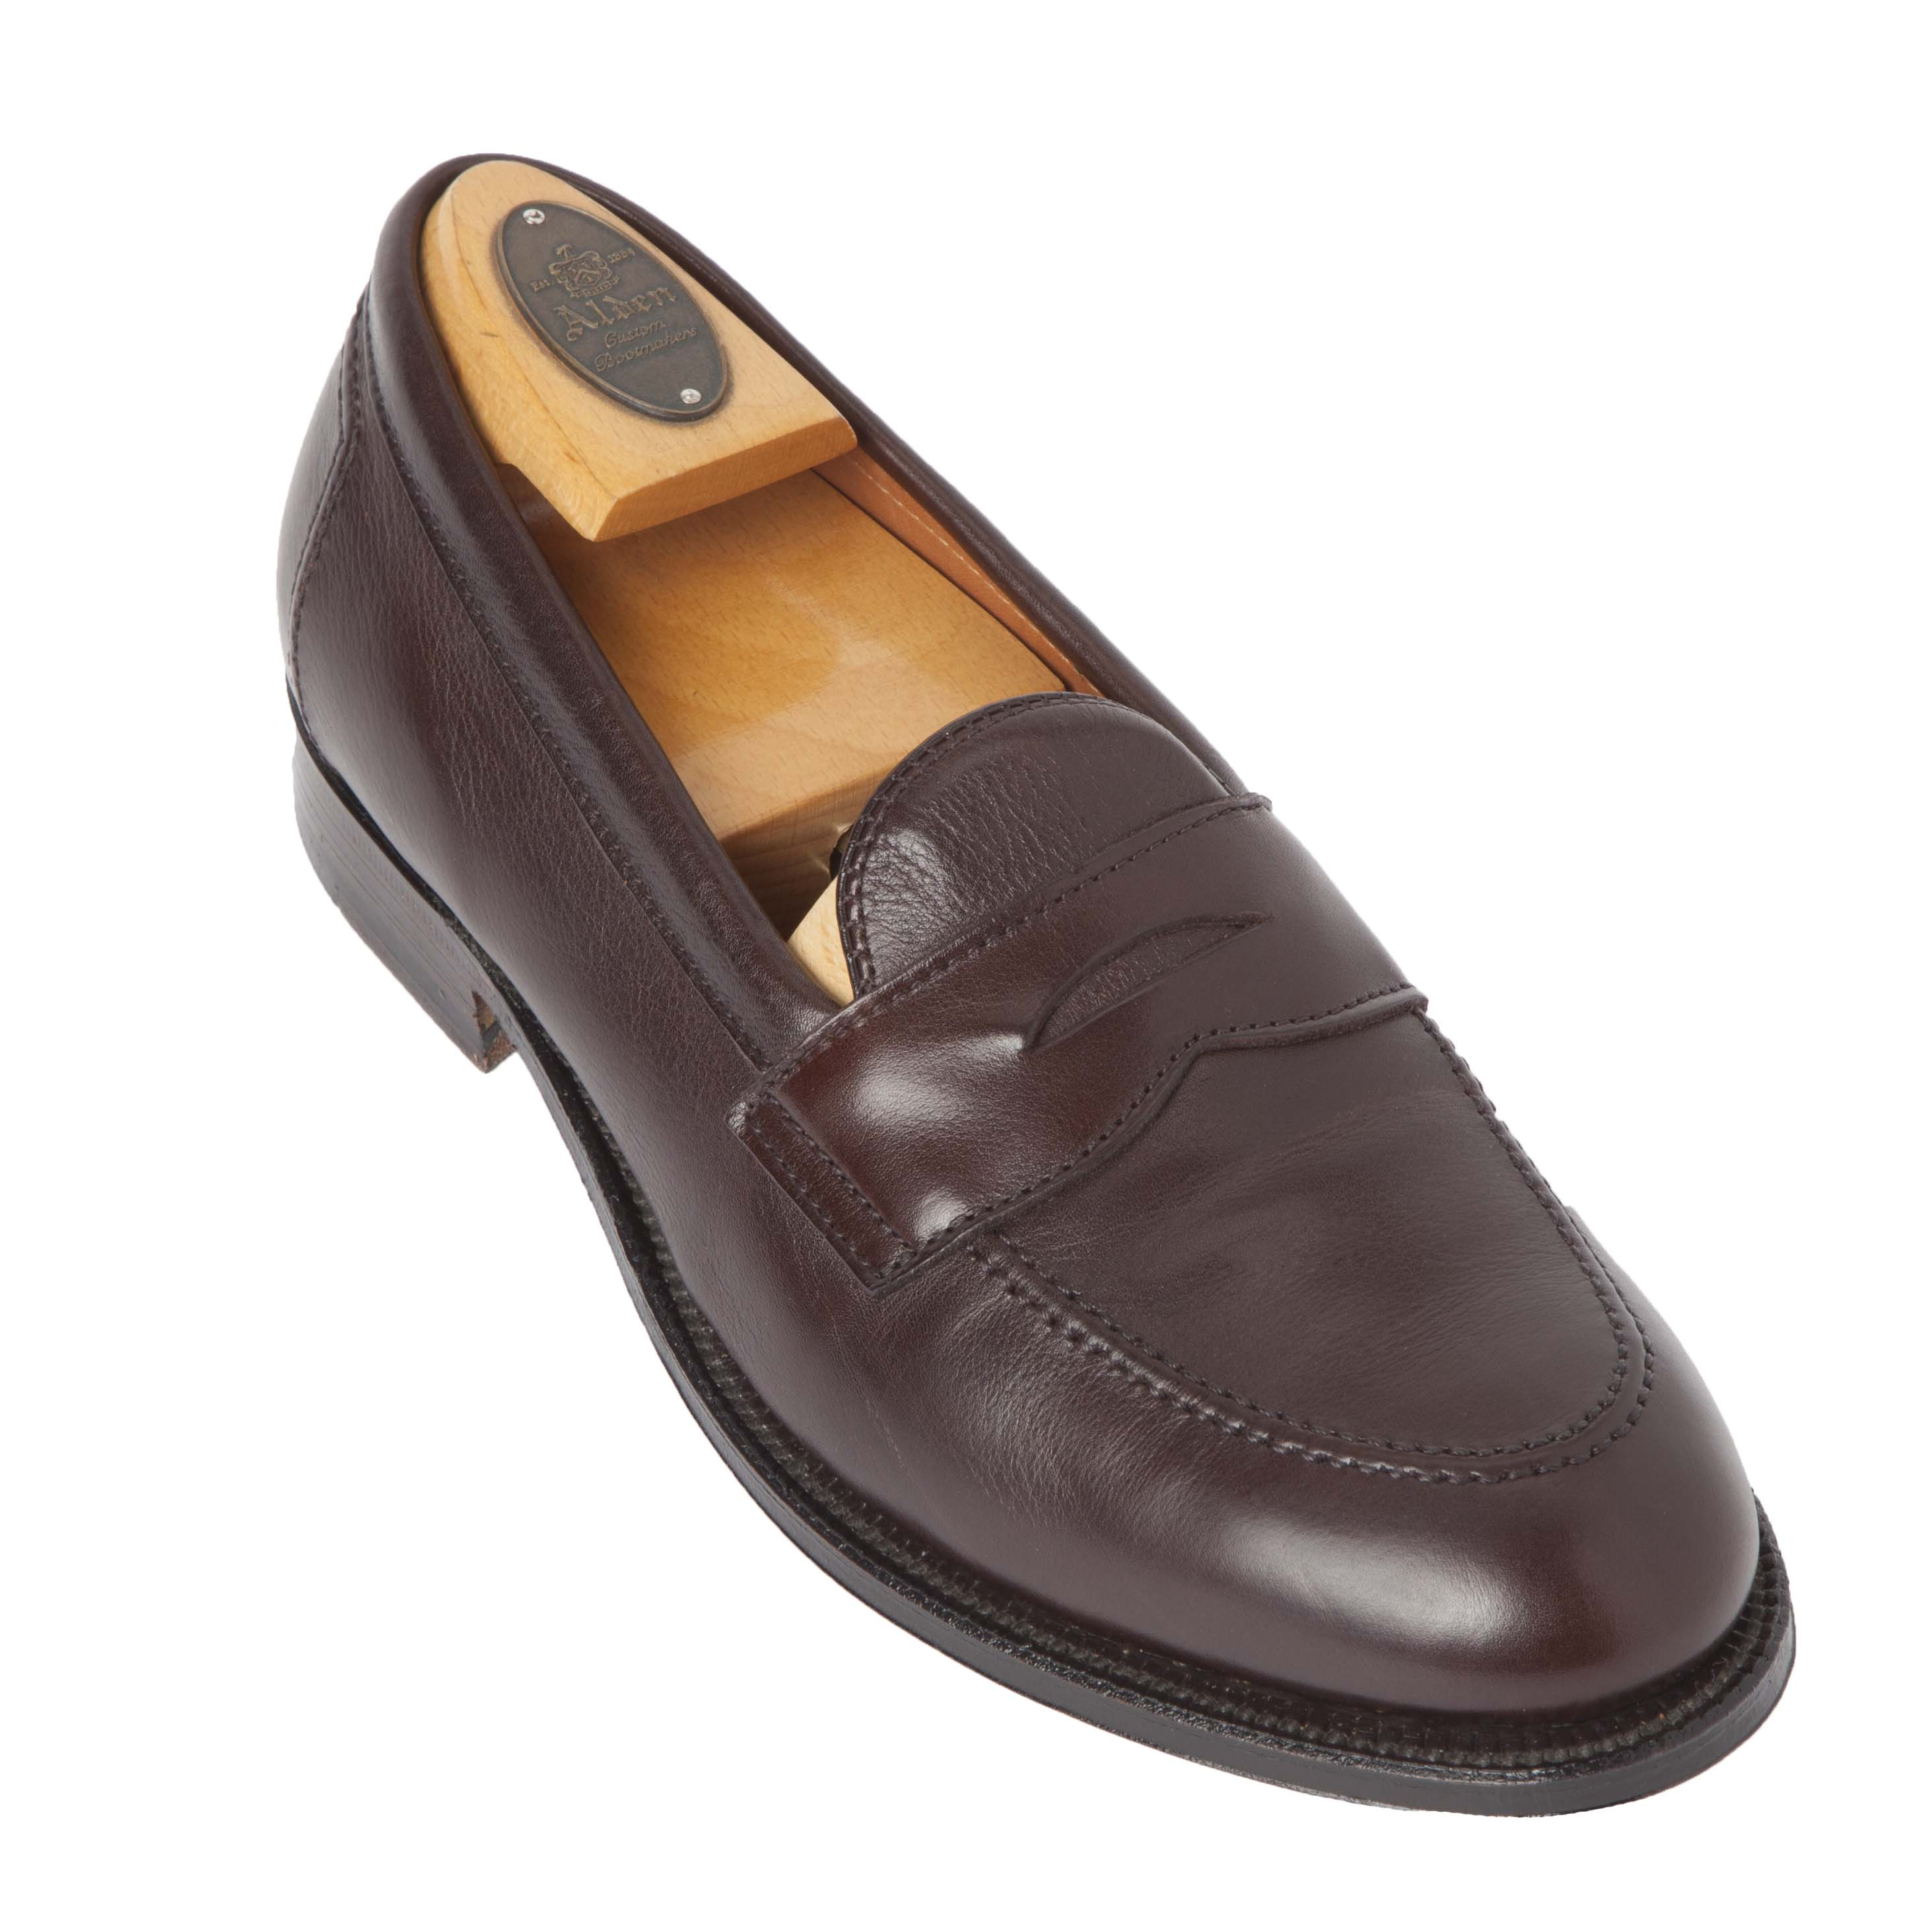 b2cae54c2dfa Flex Penny LoaferBrown Calfskin9694F – Alden Shoes Madison Avenue ...